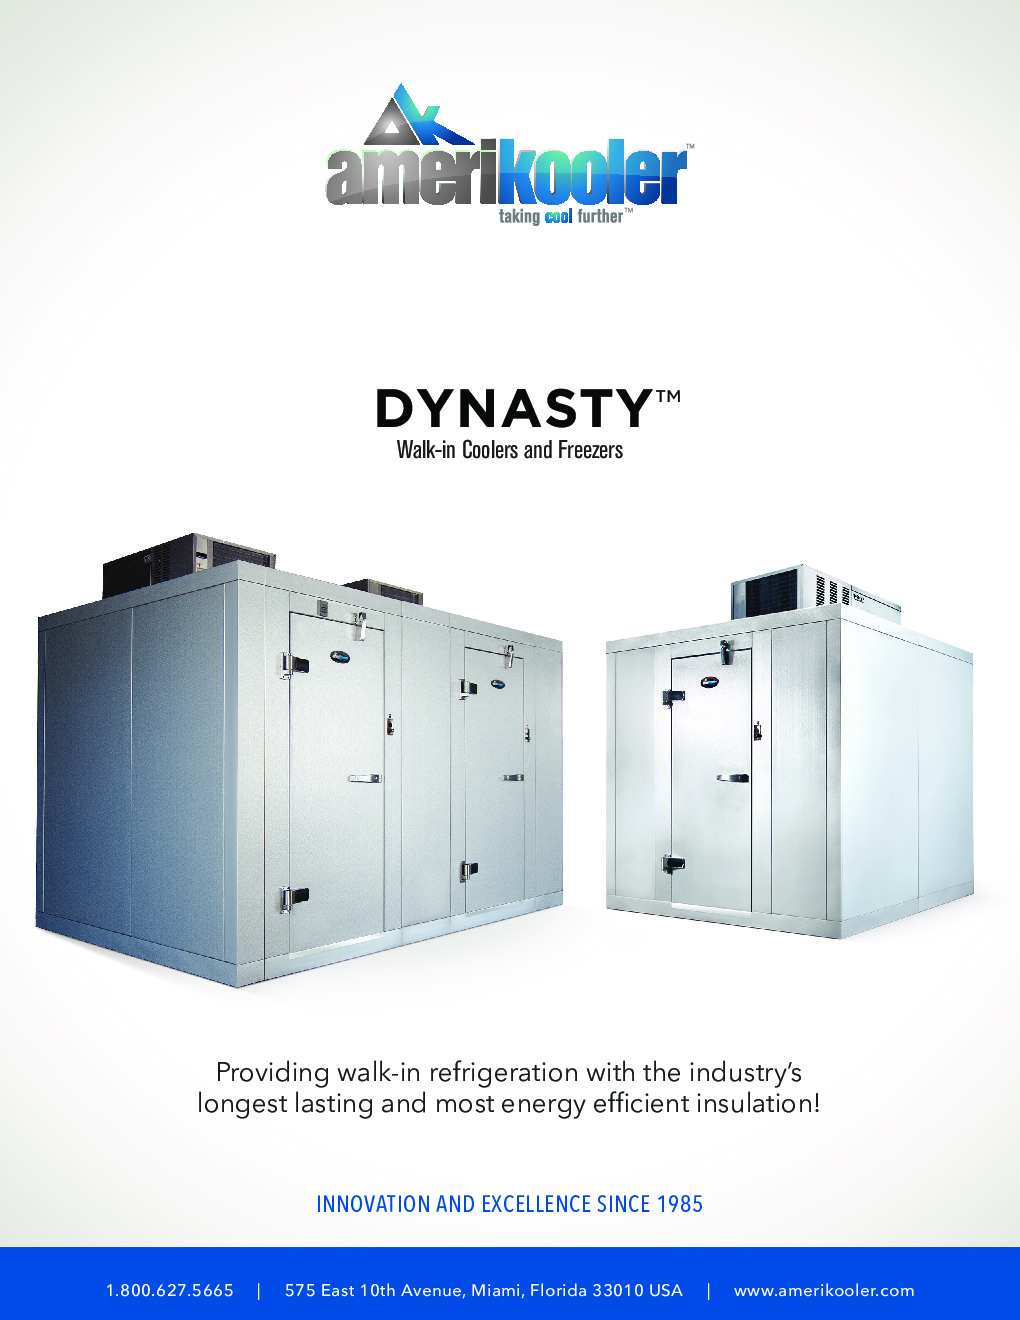 AmeriKooler DW091277N-5/7-RM 9' X 12' Walk-In Cooler, 7' L Cooler without Floor and 5' L Freezer, Remote